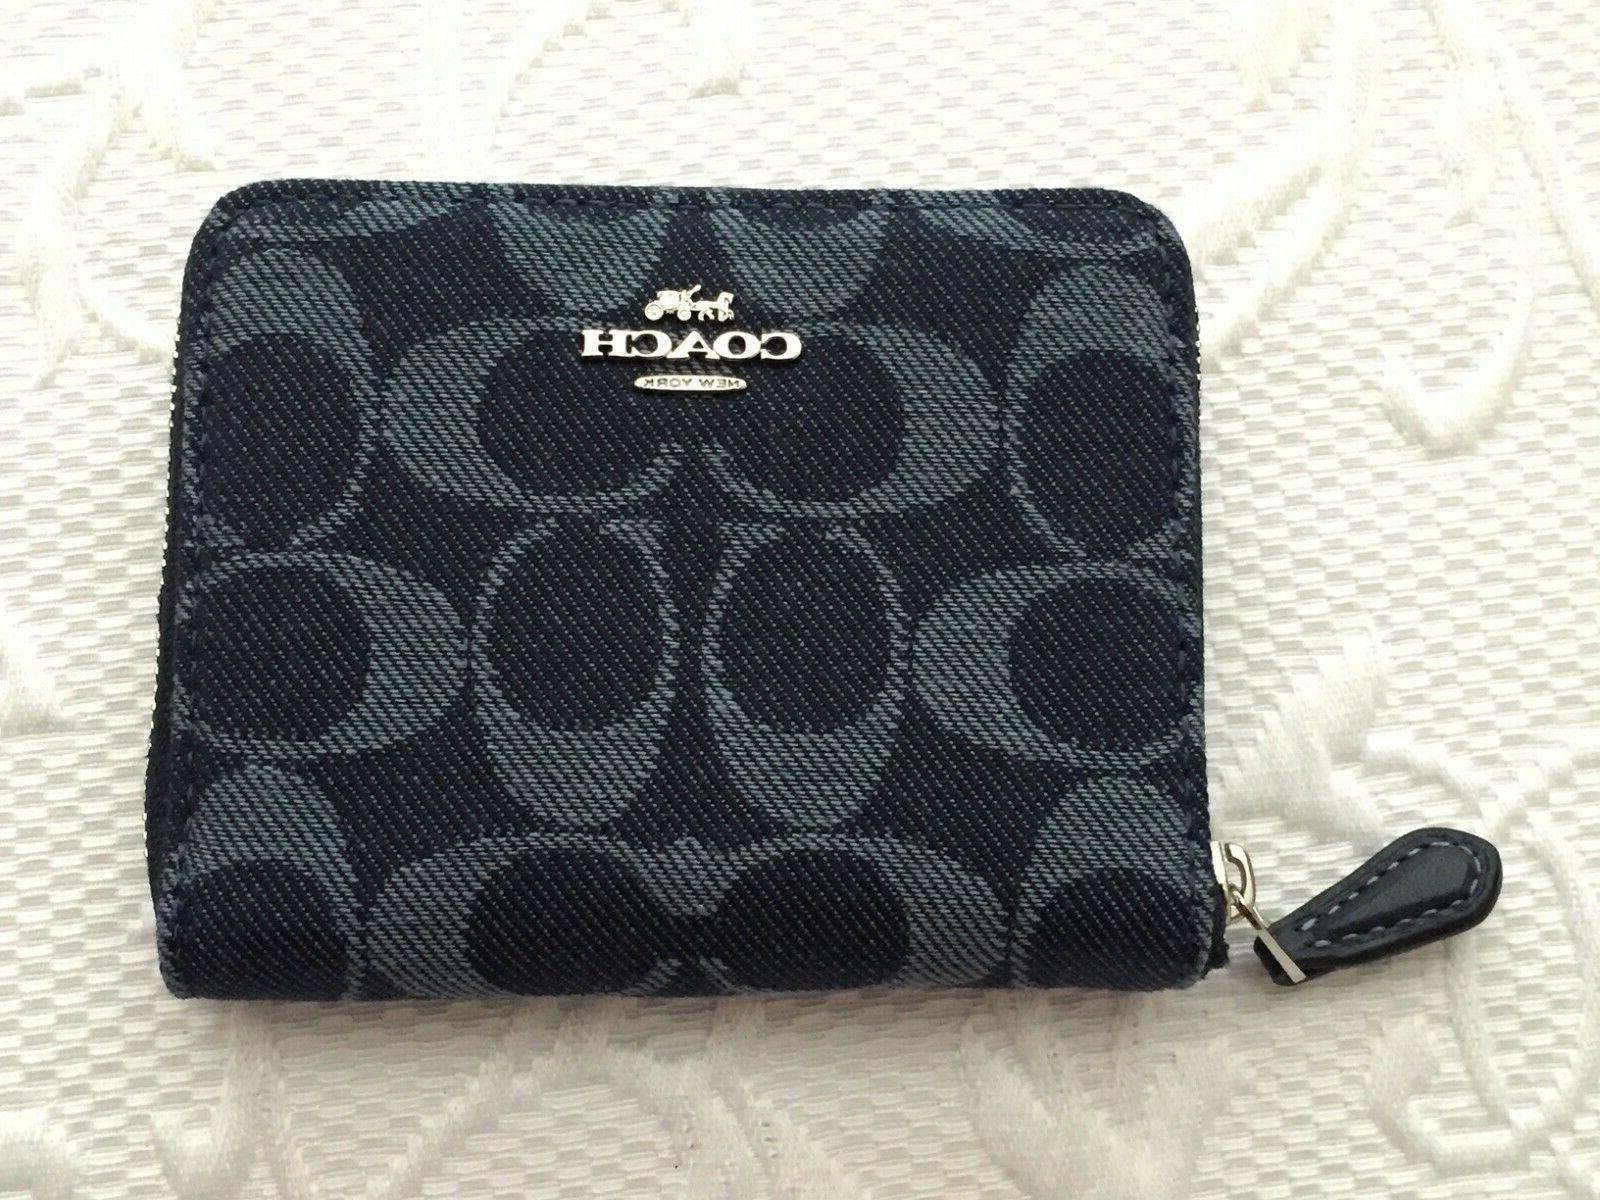 nwt f67586 small zip around wallet in